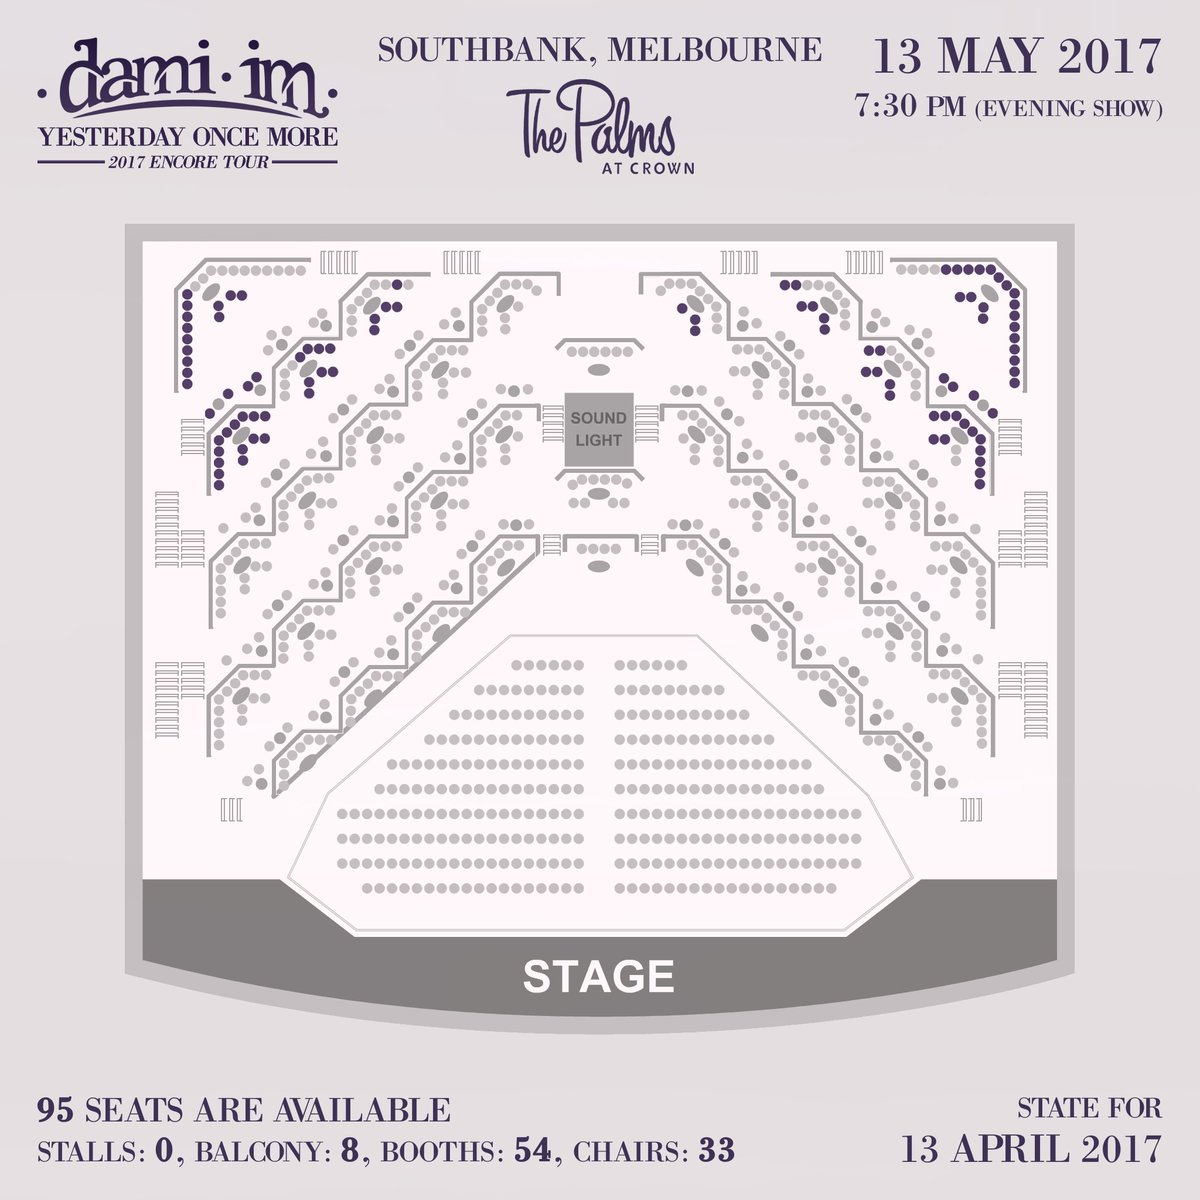 Palms At Crown Seating Map